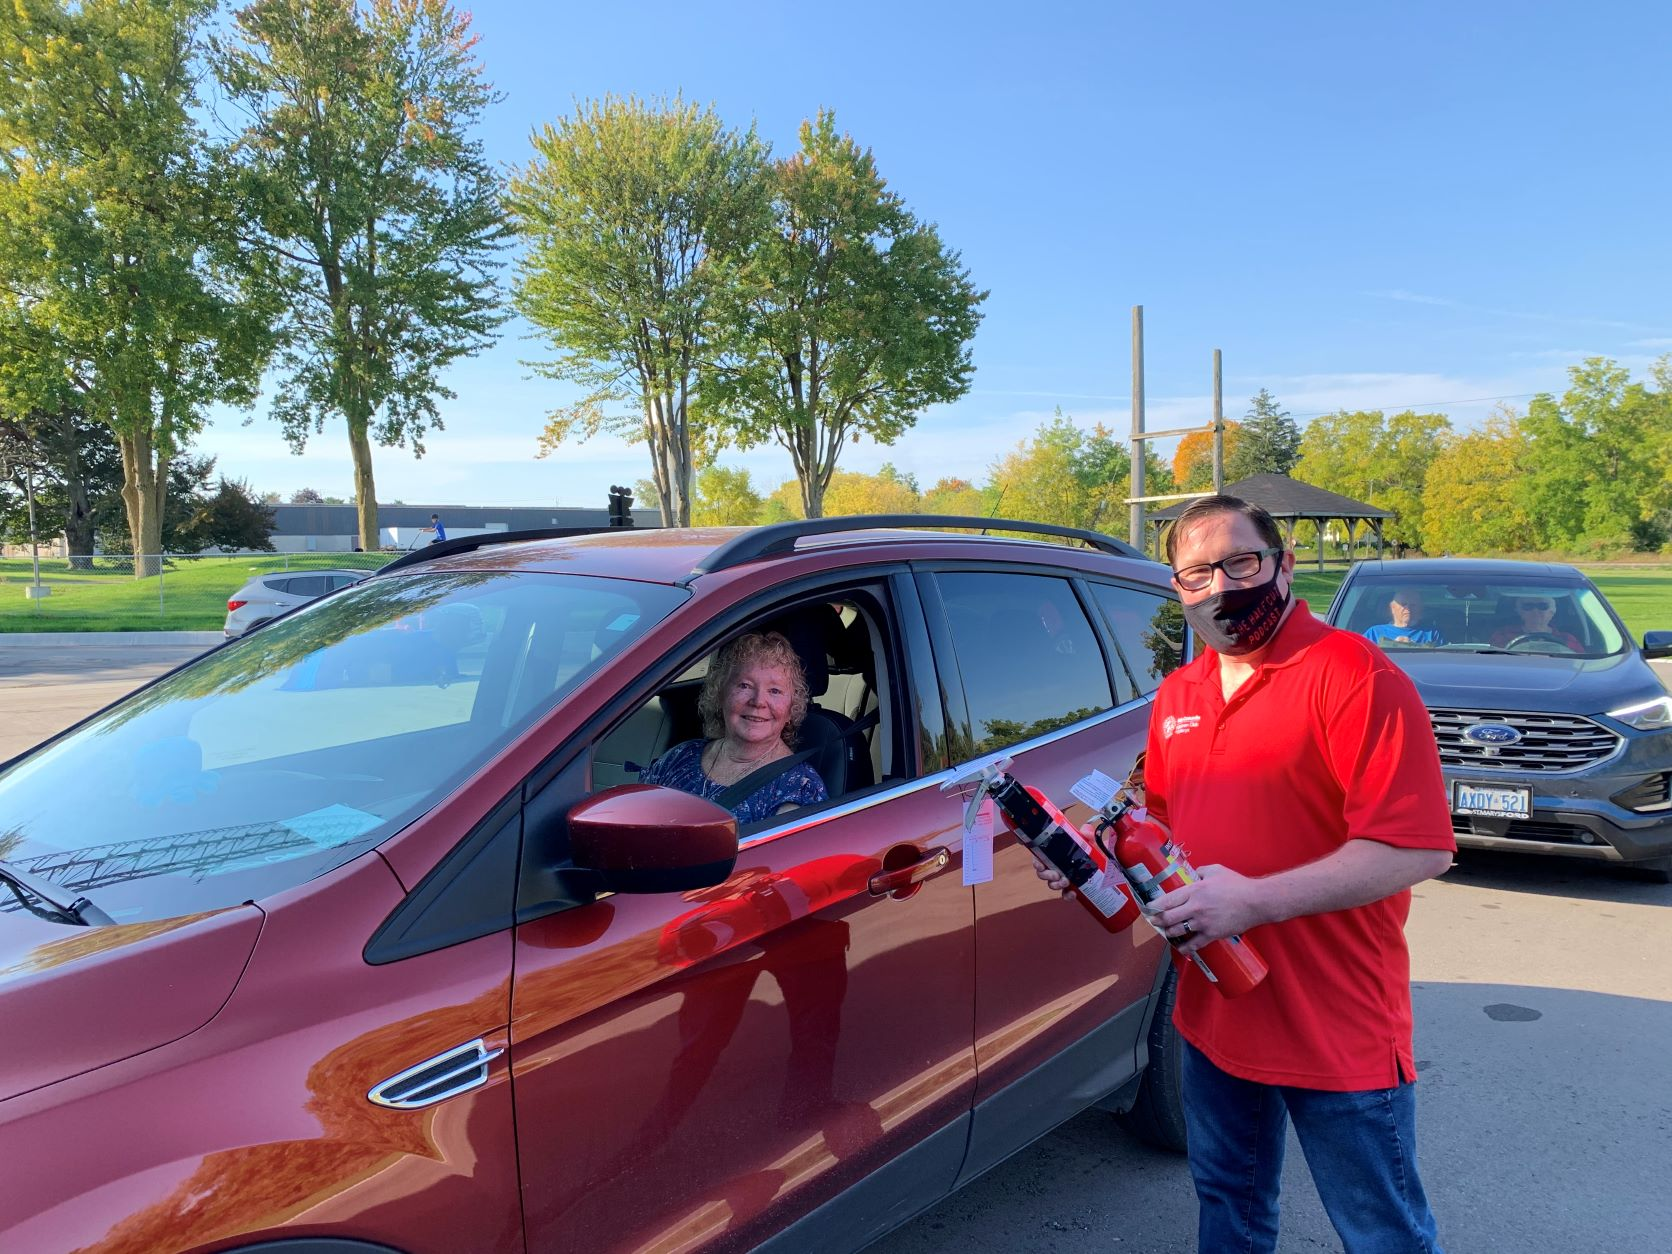 St. Marys Kinsmen Chris Swarthout hands a local resident a fire extinguisher for her vehicle at the first Cindy's Law Fire Extinguisher Giveaway on October 2, 2021.